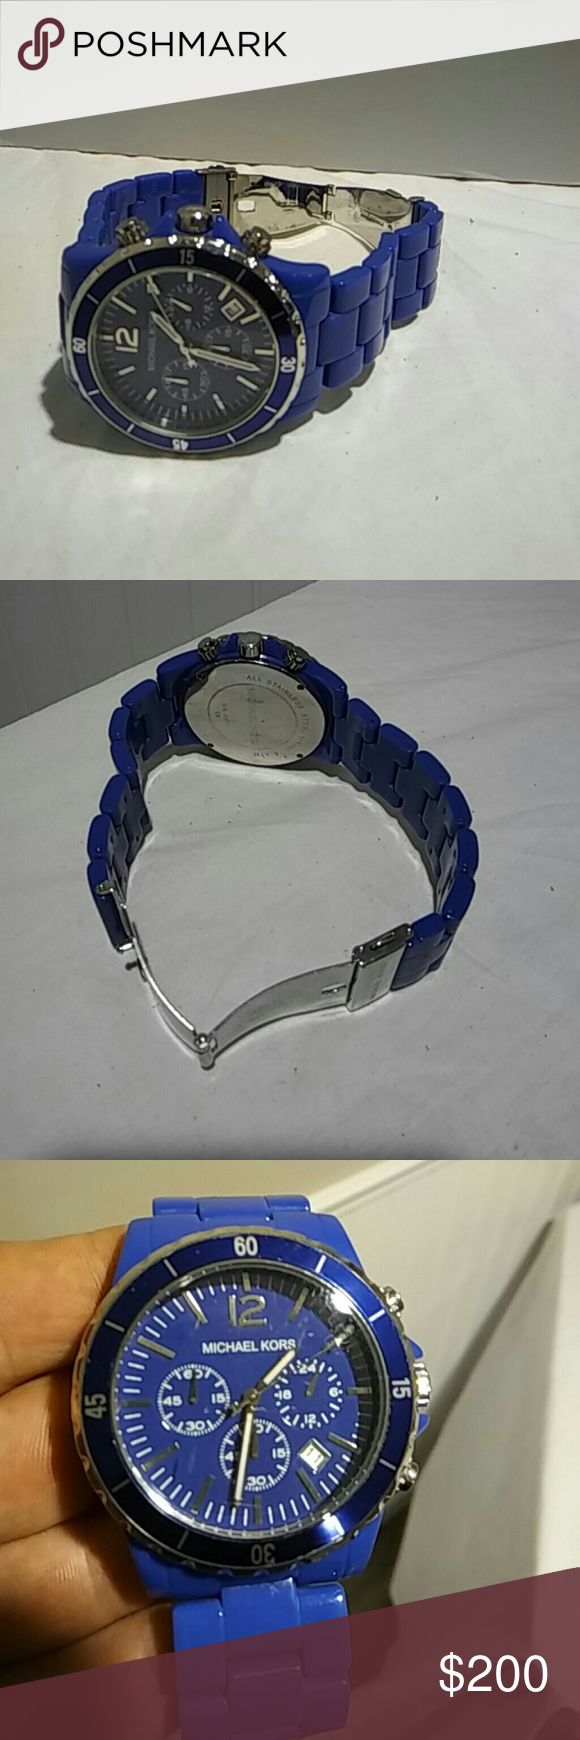 Michael. Kors. Exclusive color Ceramic blue mk watch. Price negoshe Michael Kors Accessories Watches